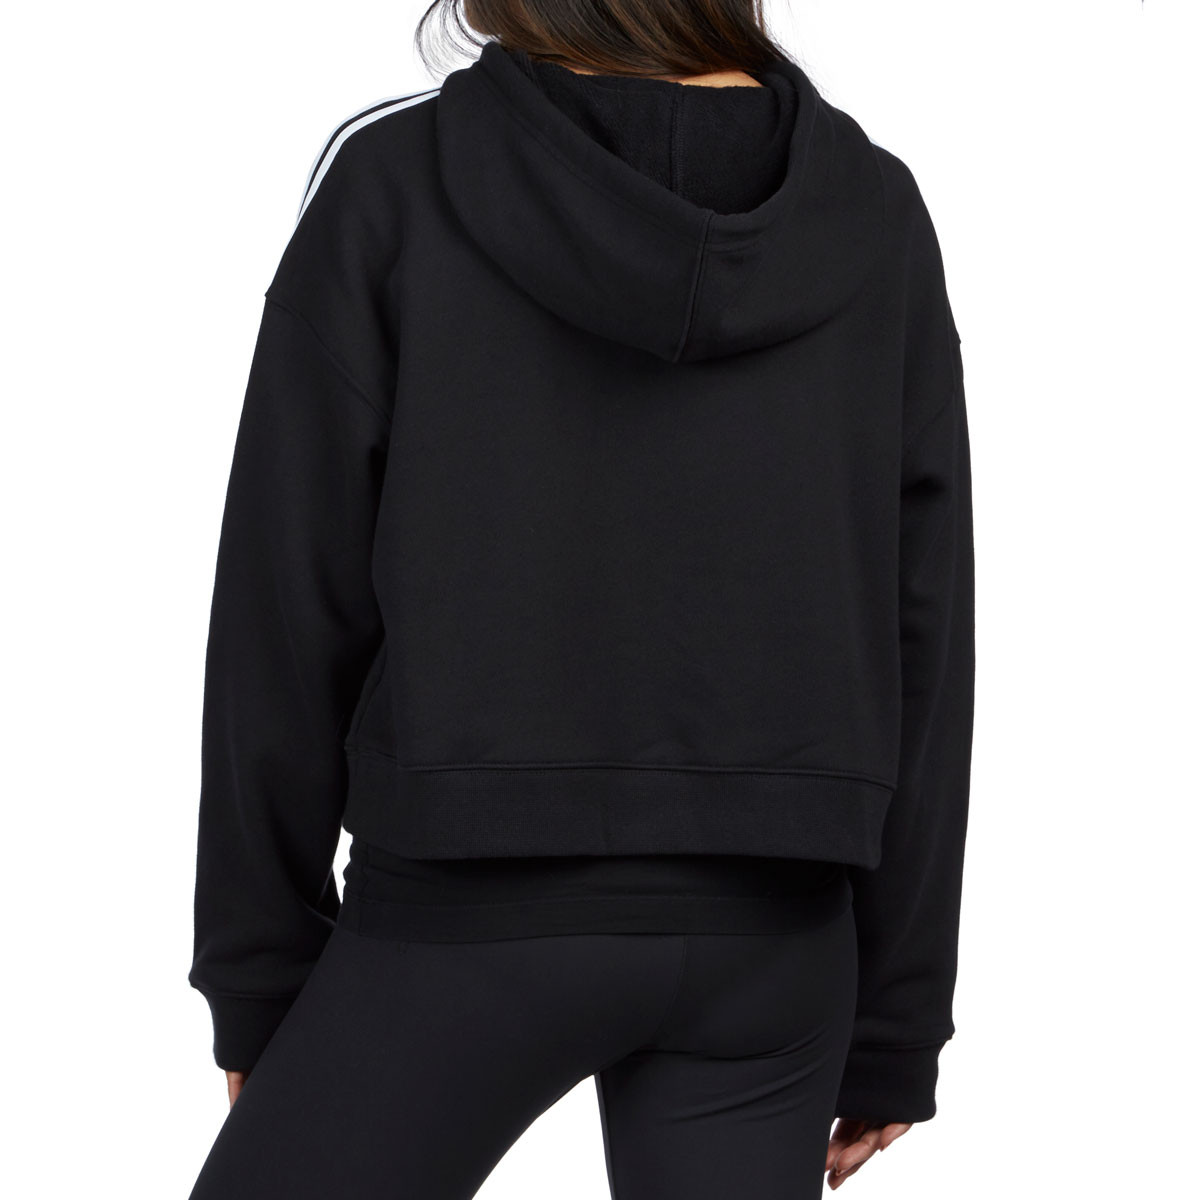 100% quality new collection official Adidas Cropped Womens Hoodie - Black